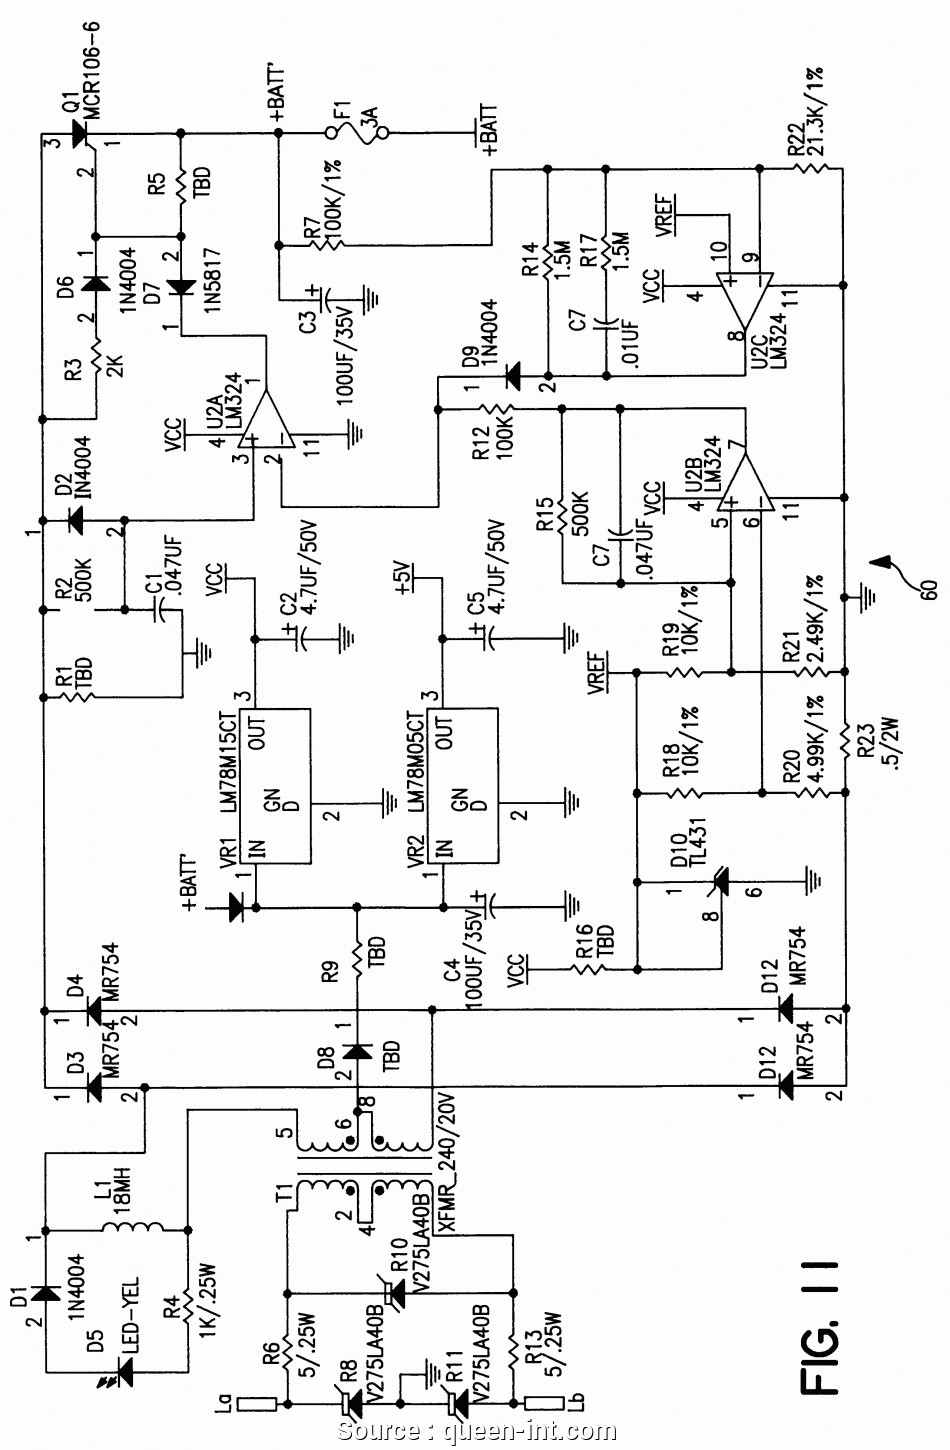 Reliance Transfer Switch Wiring Diagram | Manual E-Books - Reliance Generator Transfer Switch Wiring Diagram